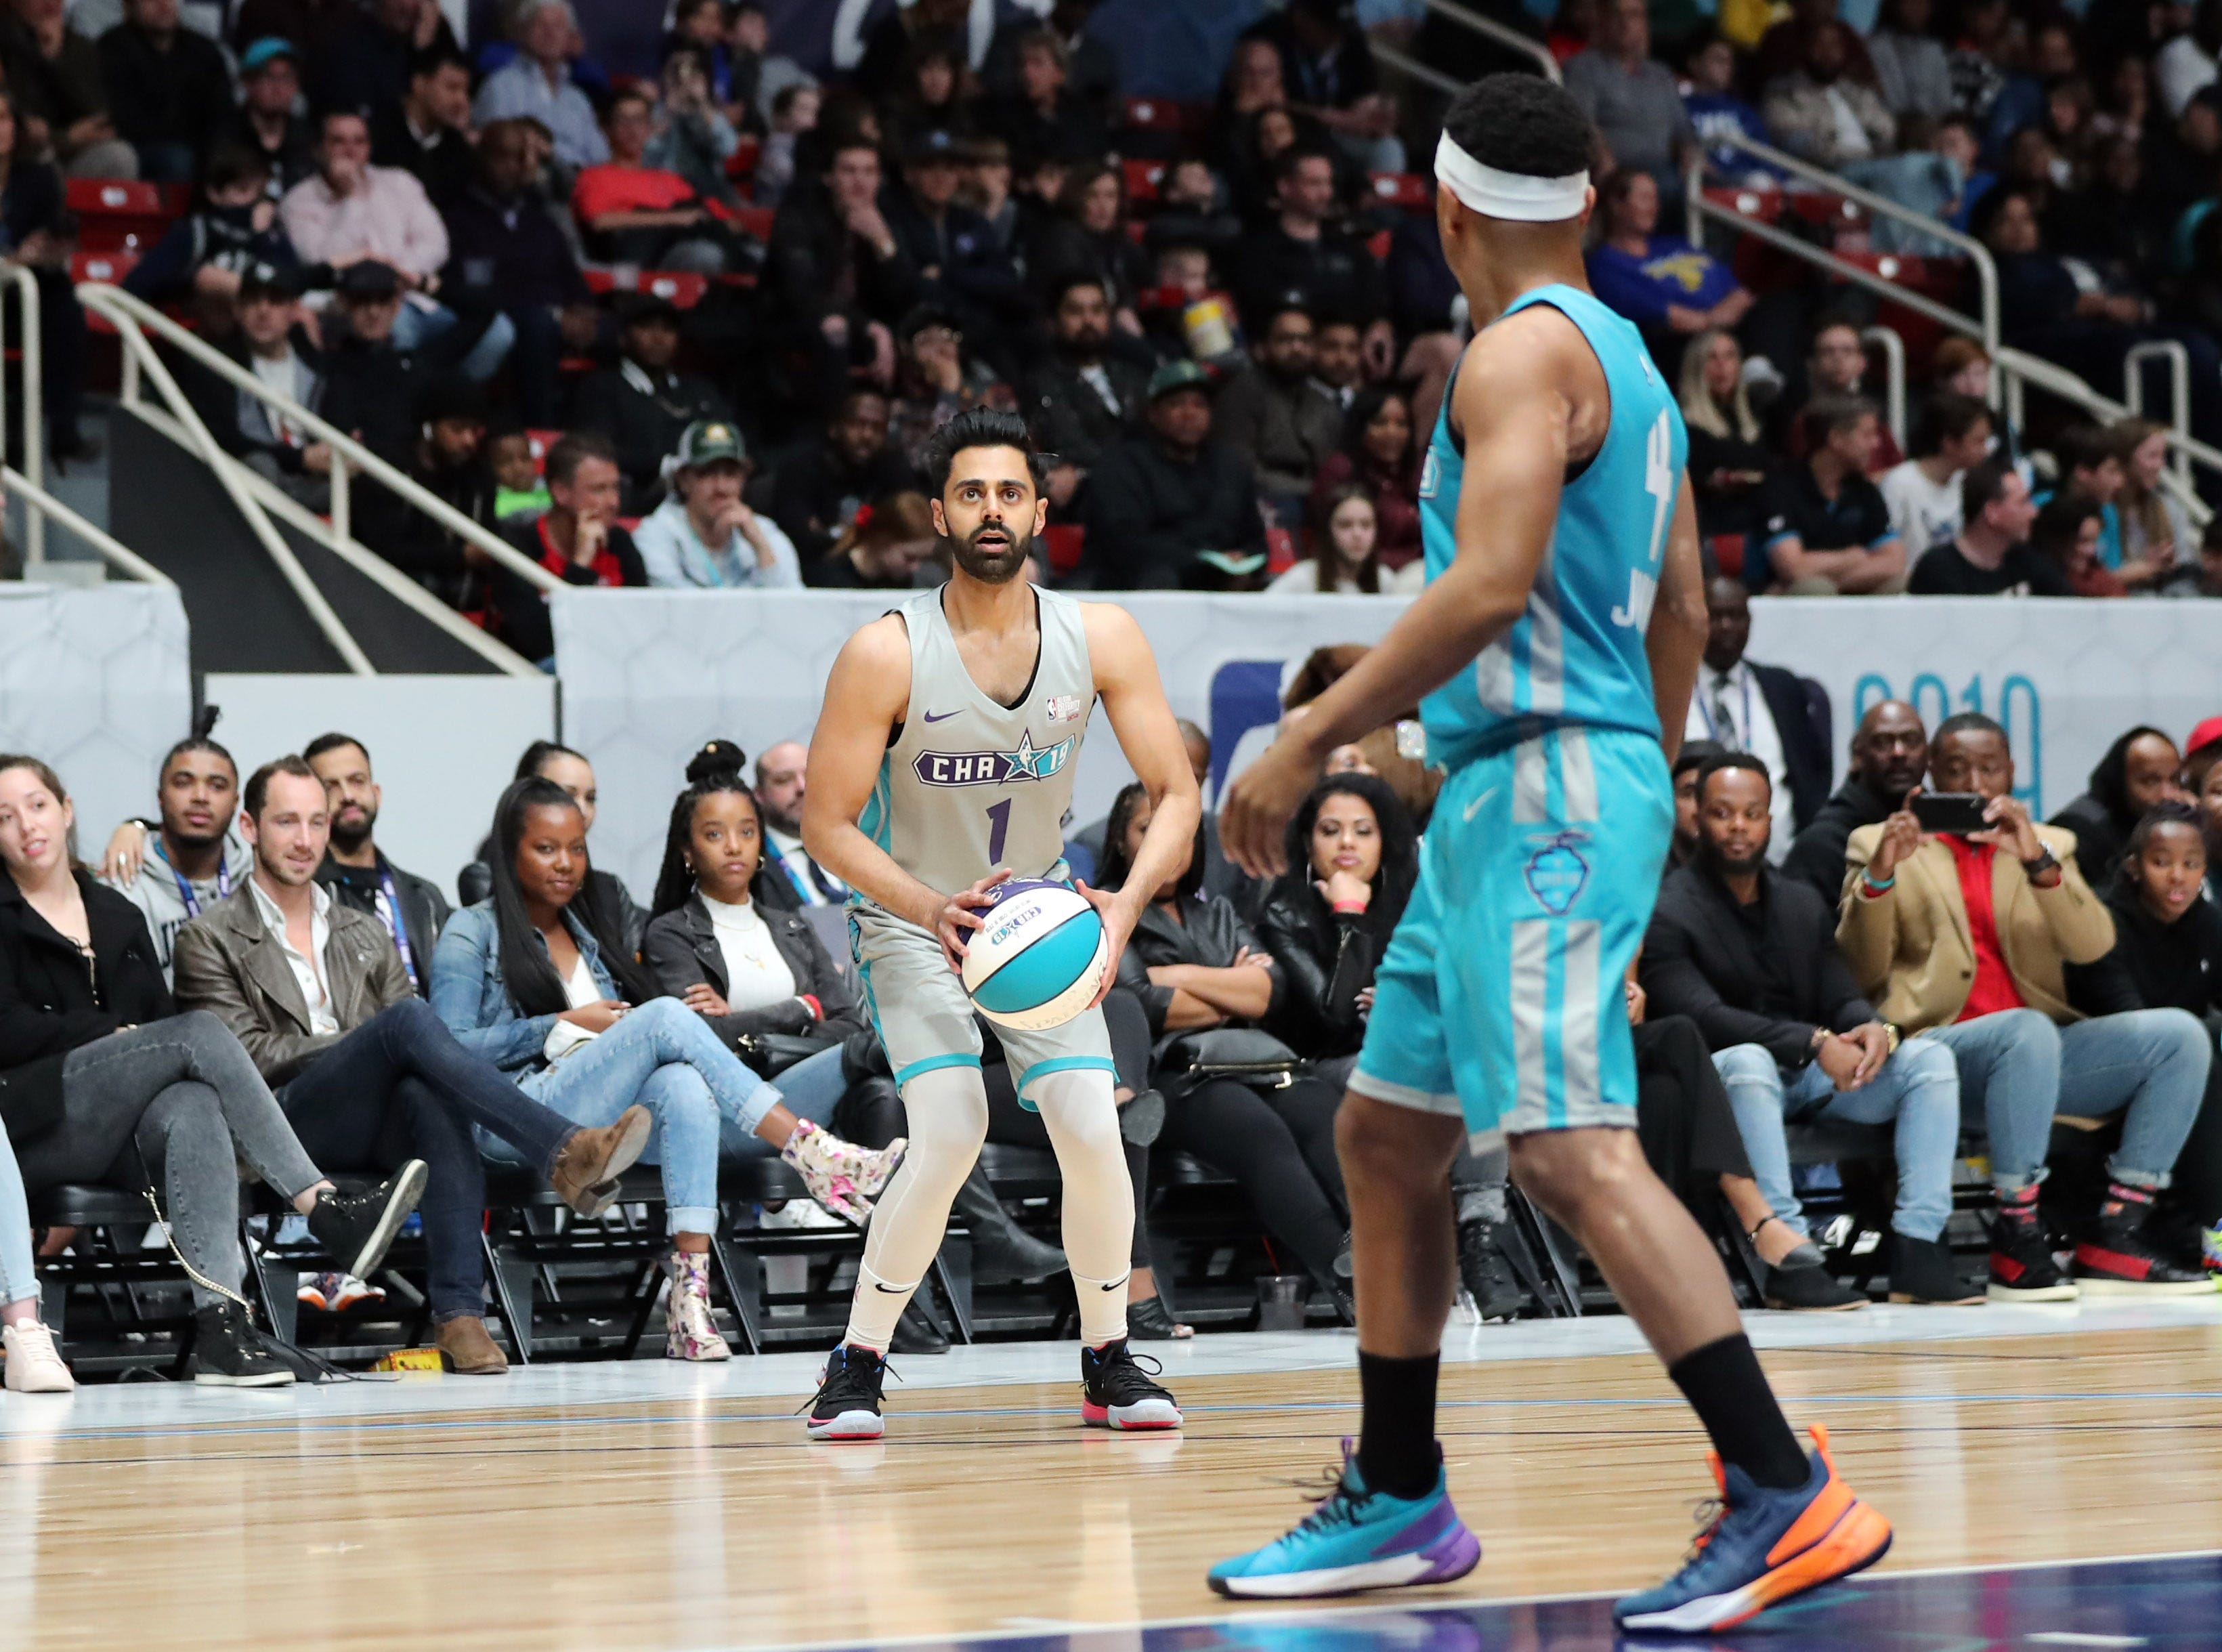 Hasan Minhaj takes a shot during the second quarter of the Celebrity Game.